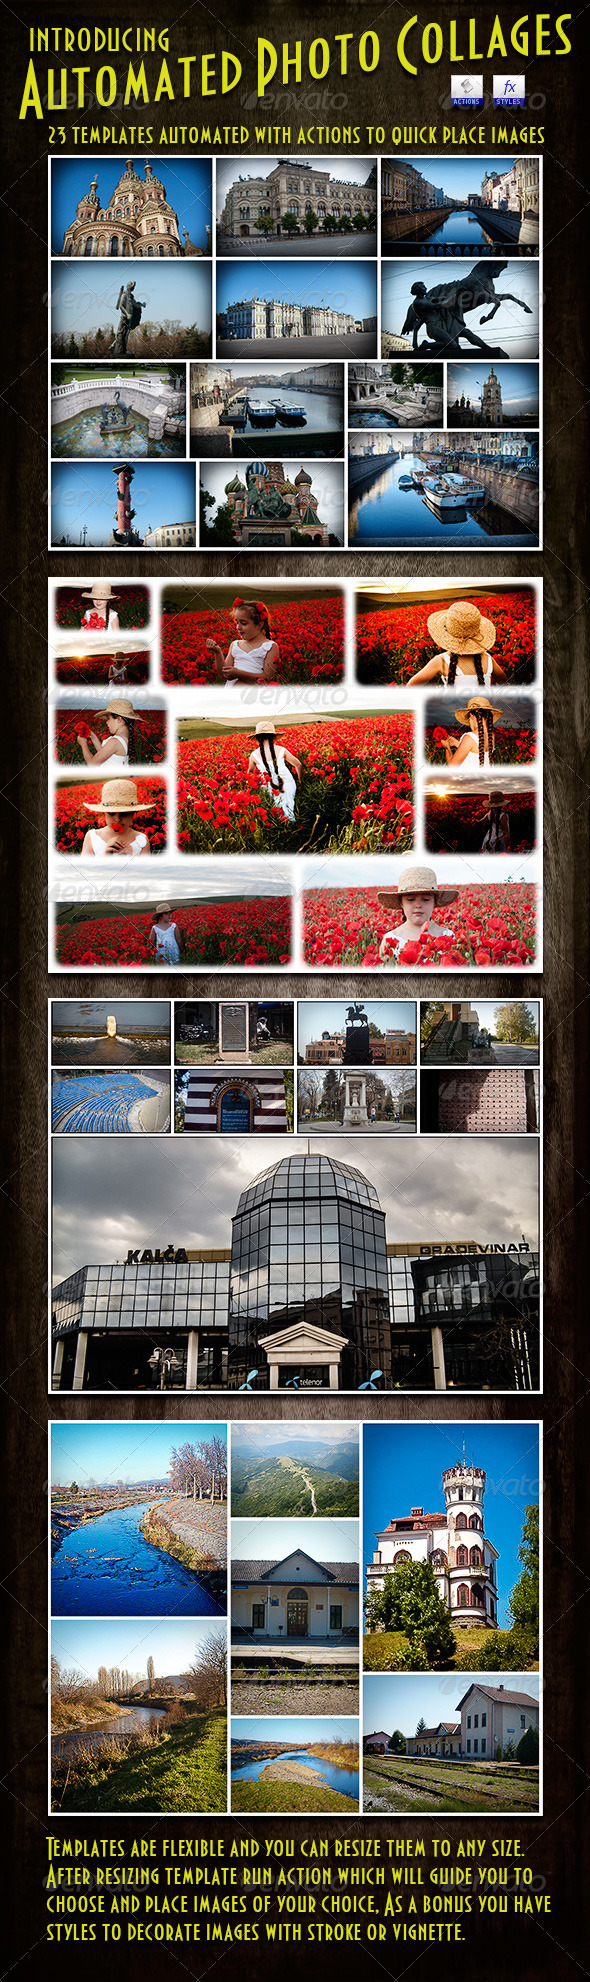 GraphicRiver Photo Collages Automated Templates 5216830